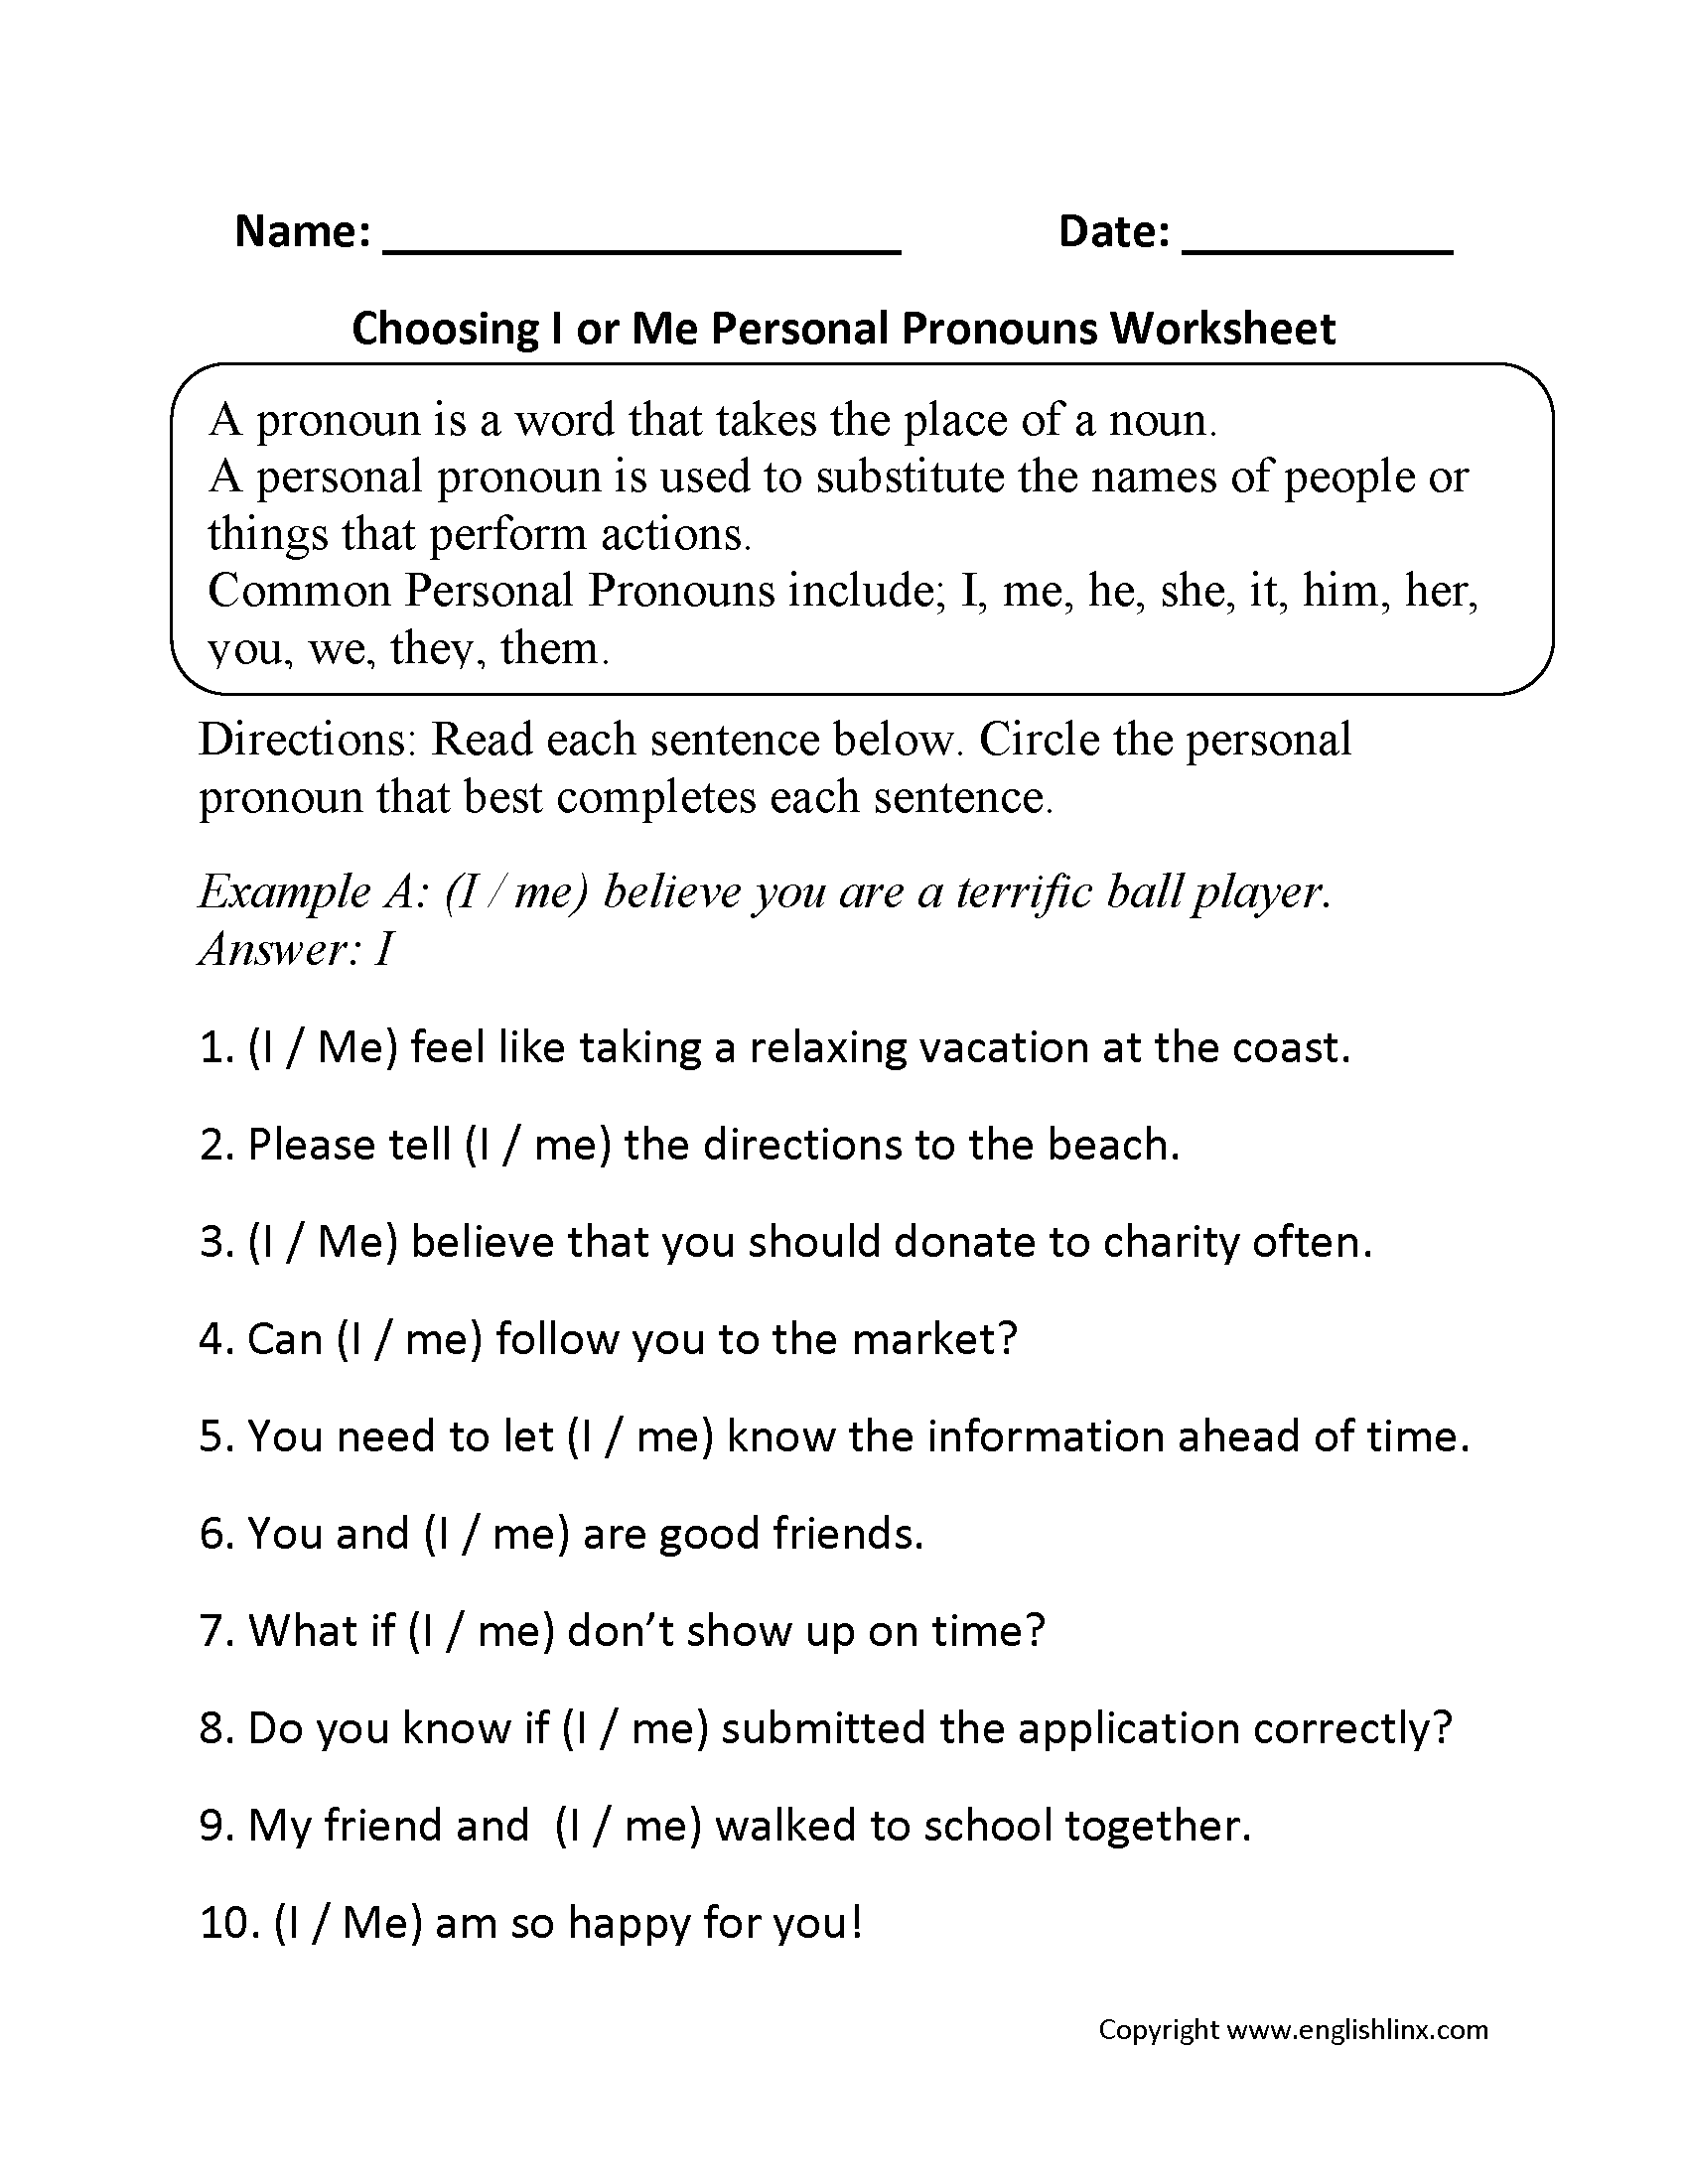 Pronouns Worksheets